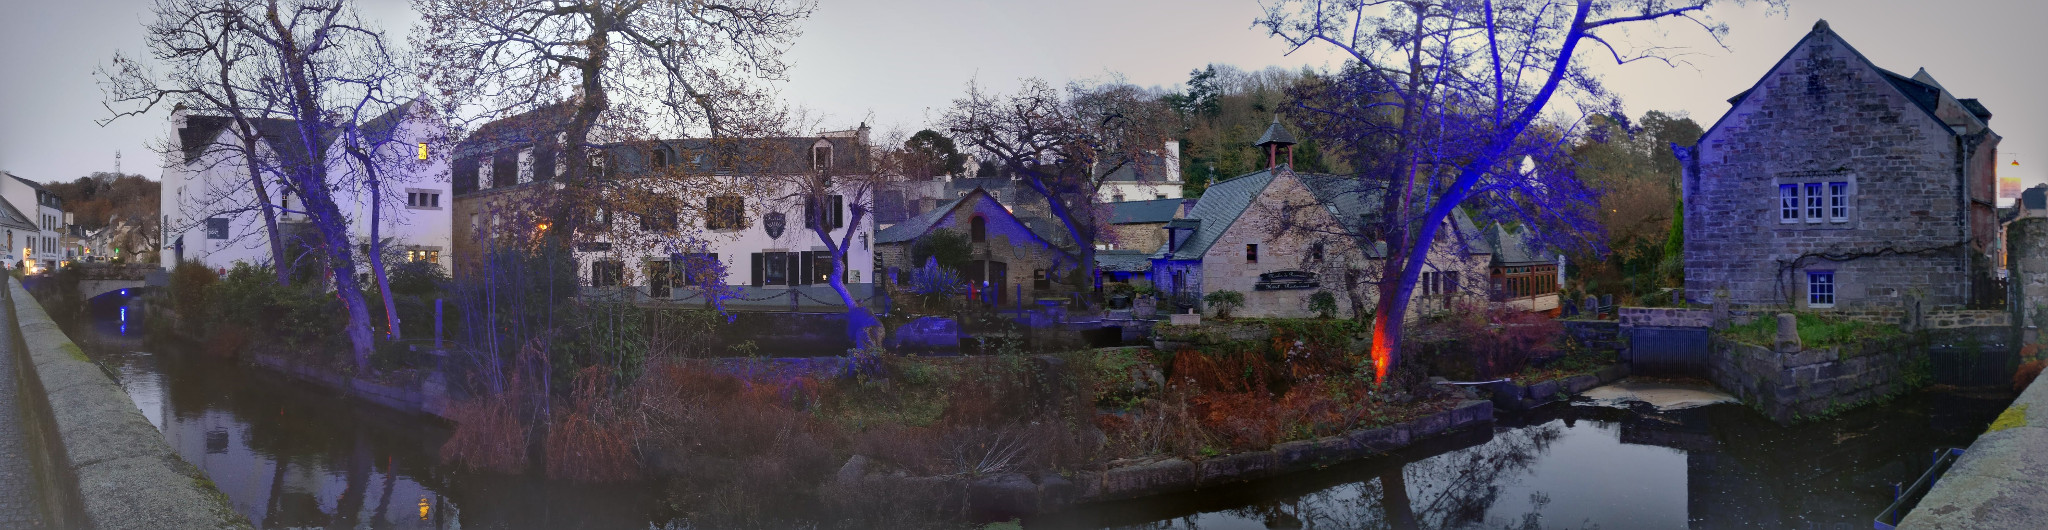 Panoramic of the River Aven passing through Pont-Aven, with nice colours and lights